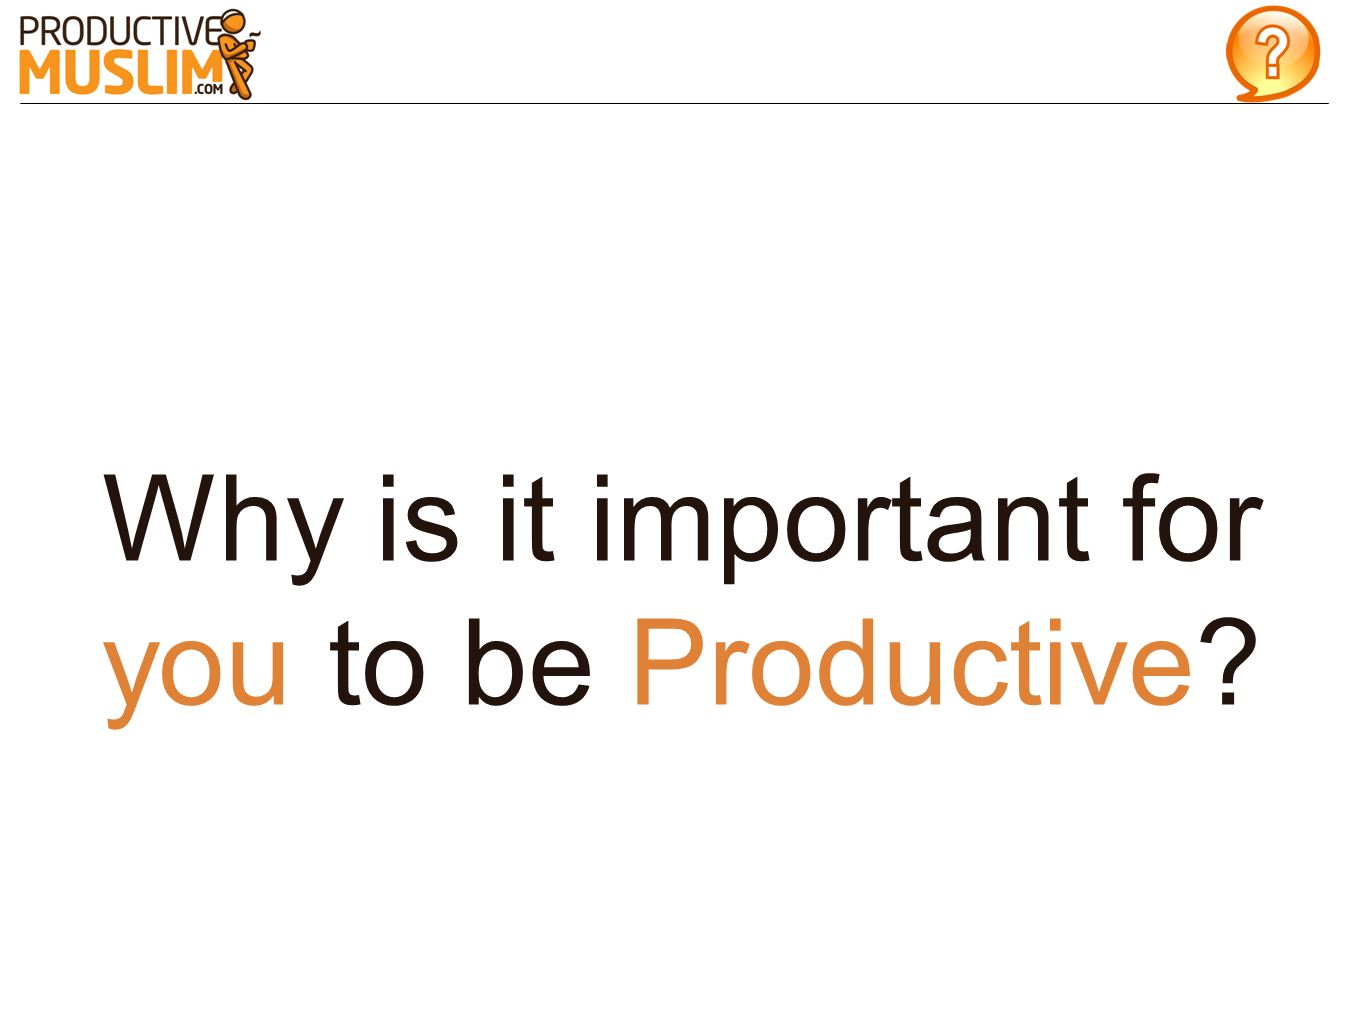 Why is it important for you to be Productive